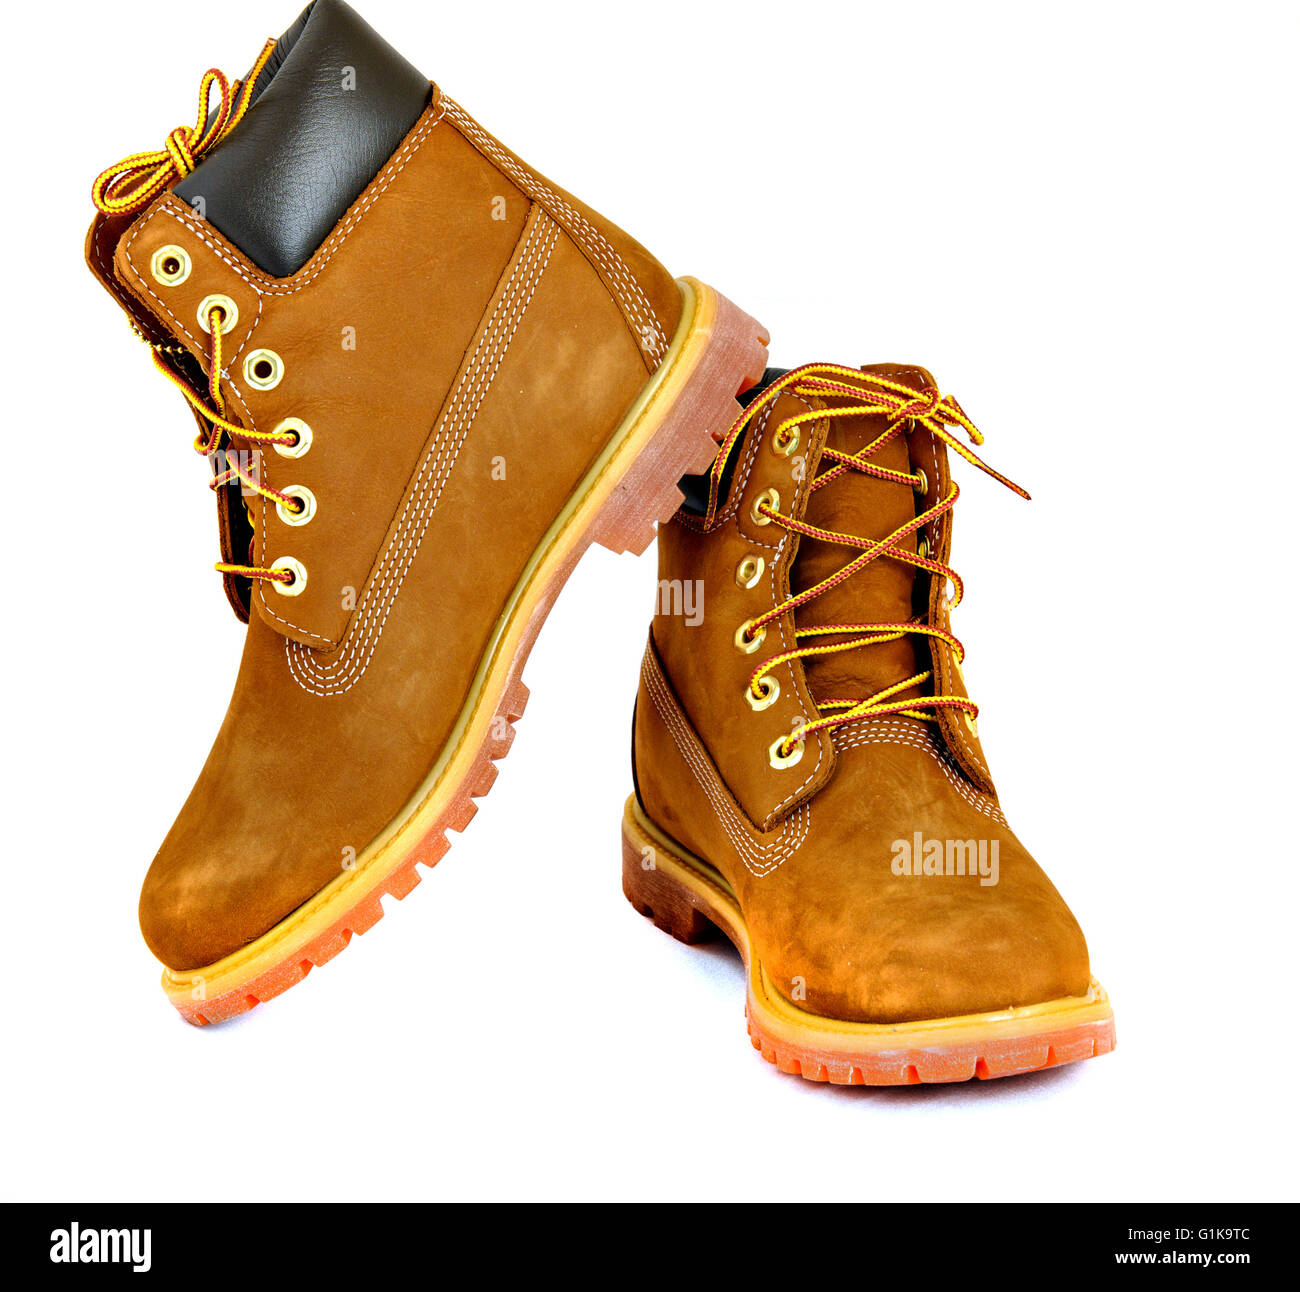 Brown lady's boots with shoelace on white background. - Stock Image